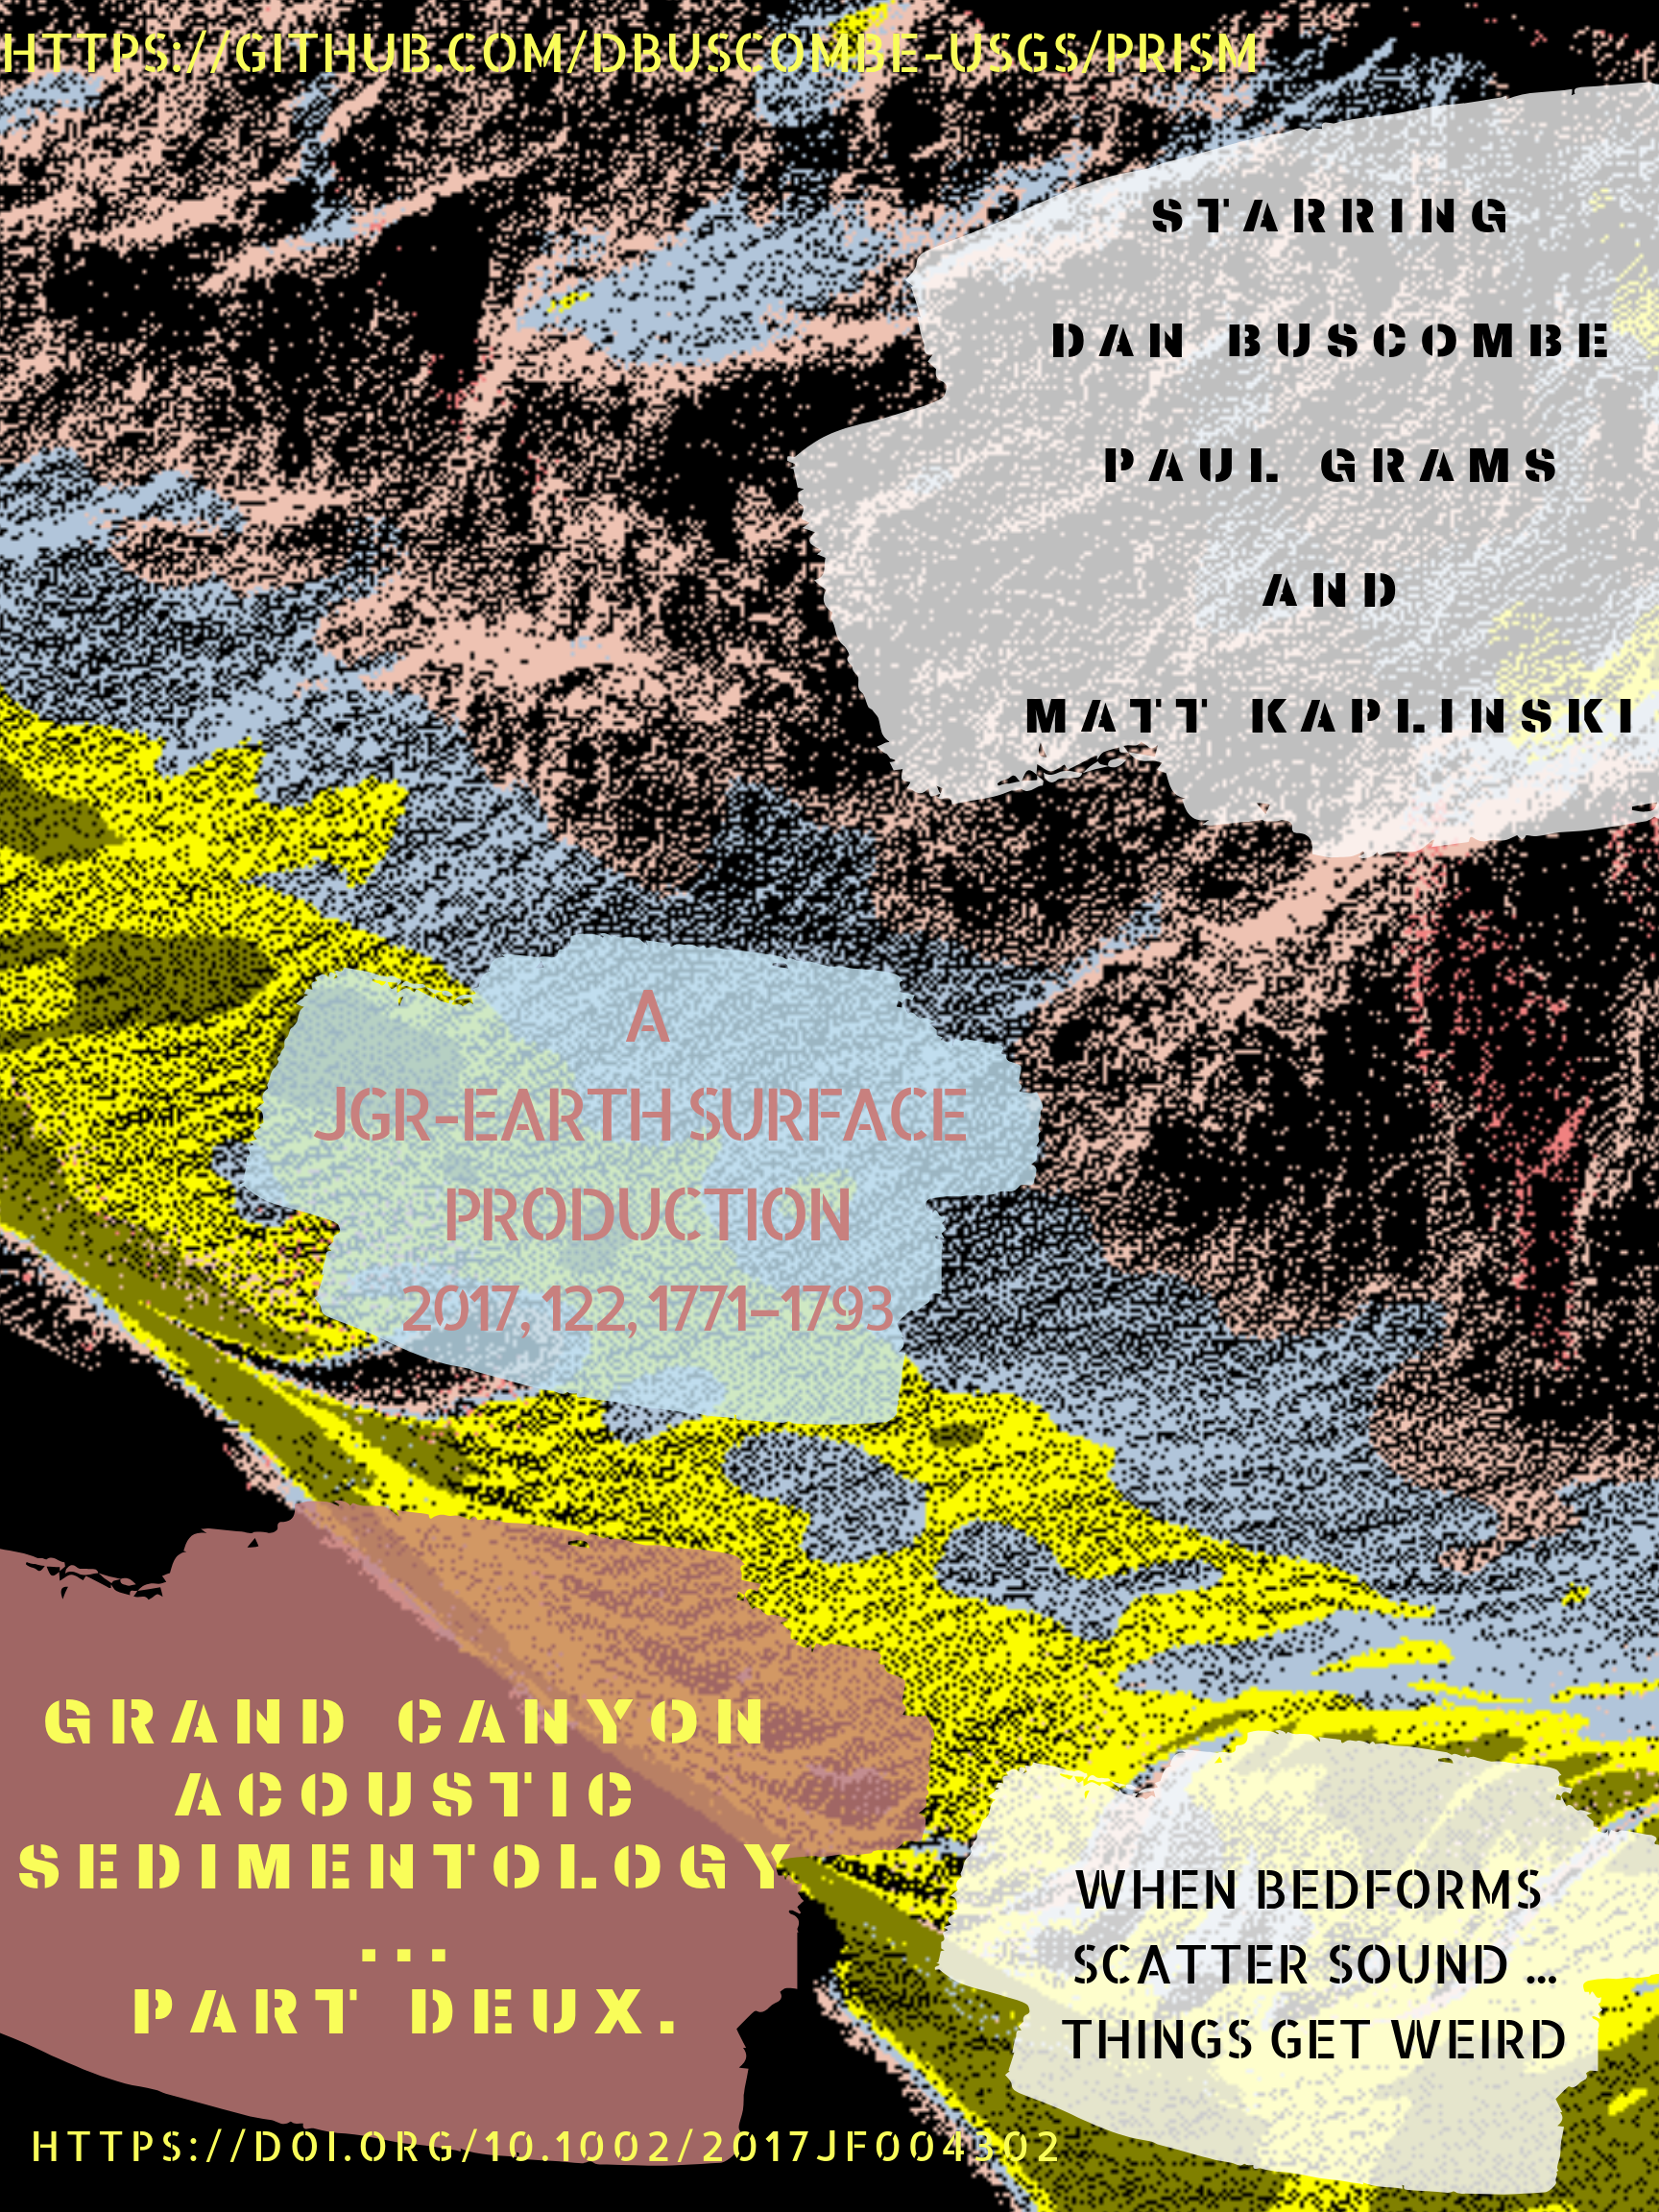 Buscombe, D., Grams, P. E., & Kaplinski, M. A. (2017). Compositional signatures in acoustic backscatter over vegetated and unvegetated mixed sand-gravel riverbeds. Journal of Geophysical Research: Earth Surface, 122, 1771–1793.  https://doi.org/10.1002/2017JF004302